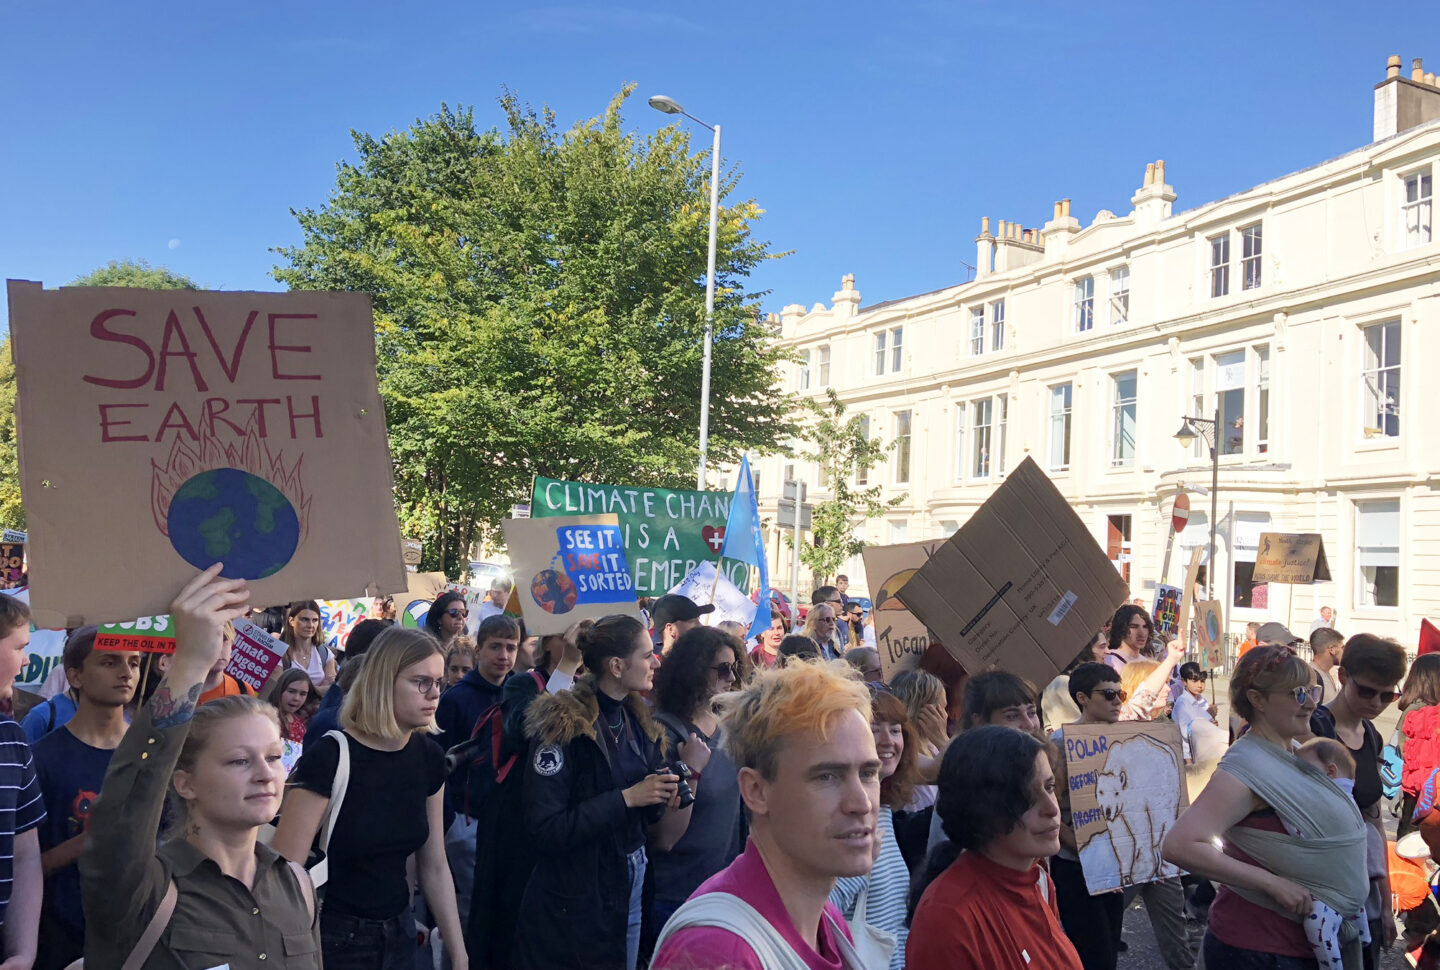 Climate protesters marching through Glasgow street holding cardboard signs